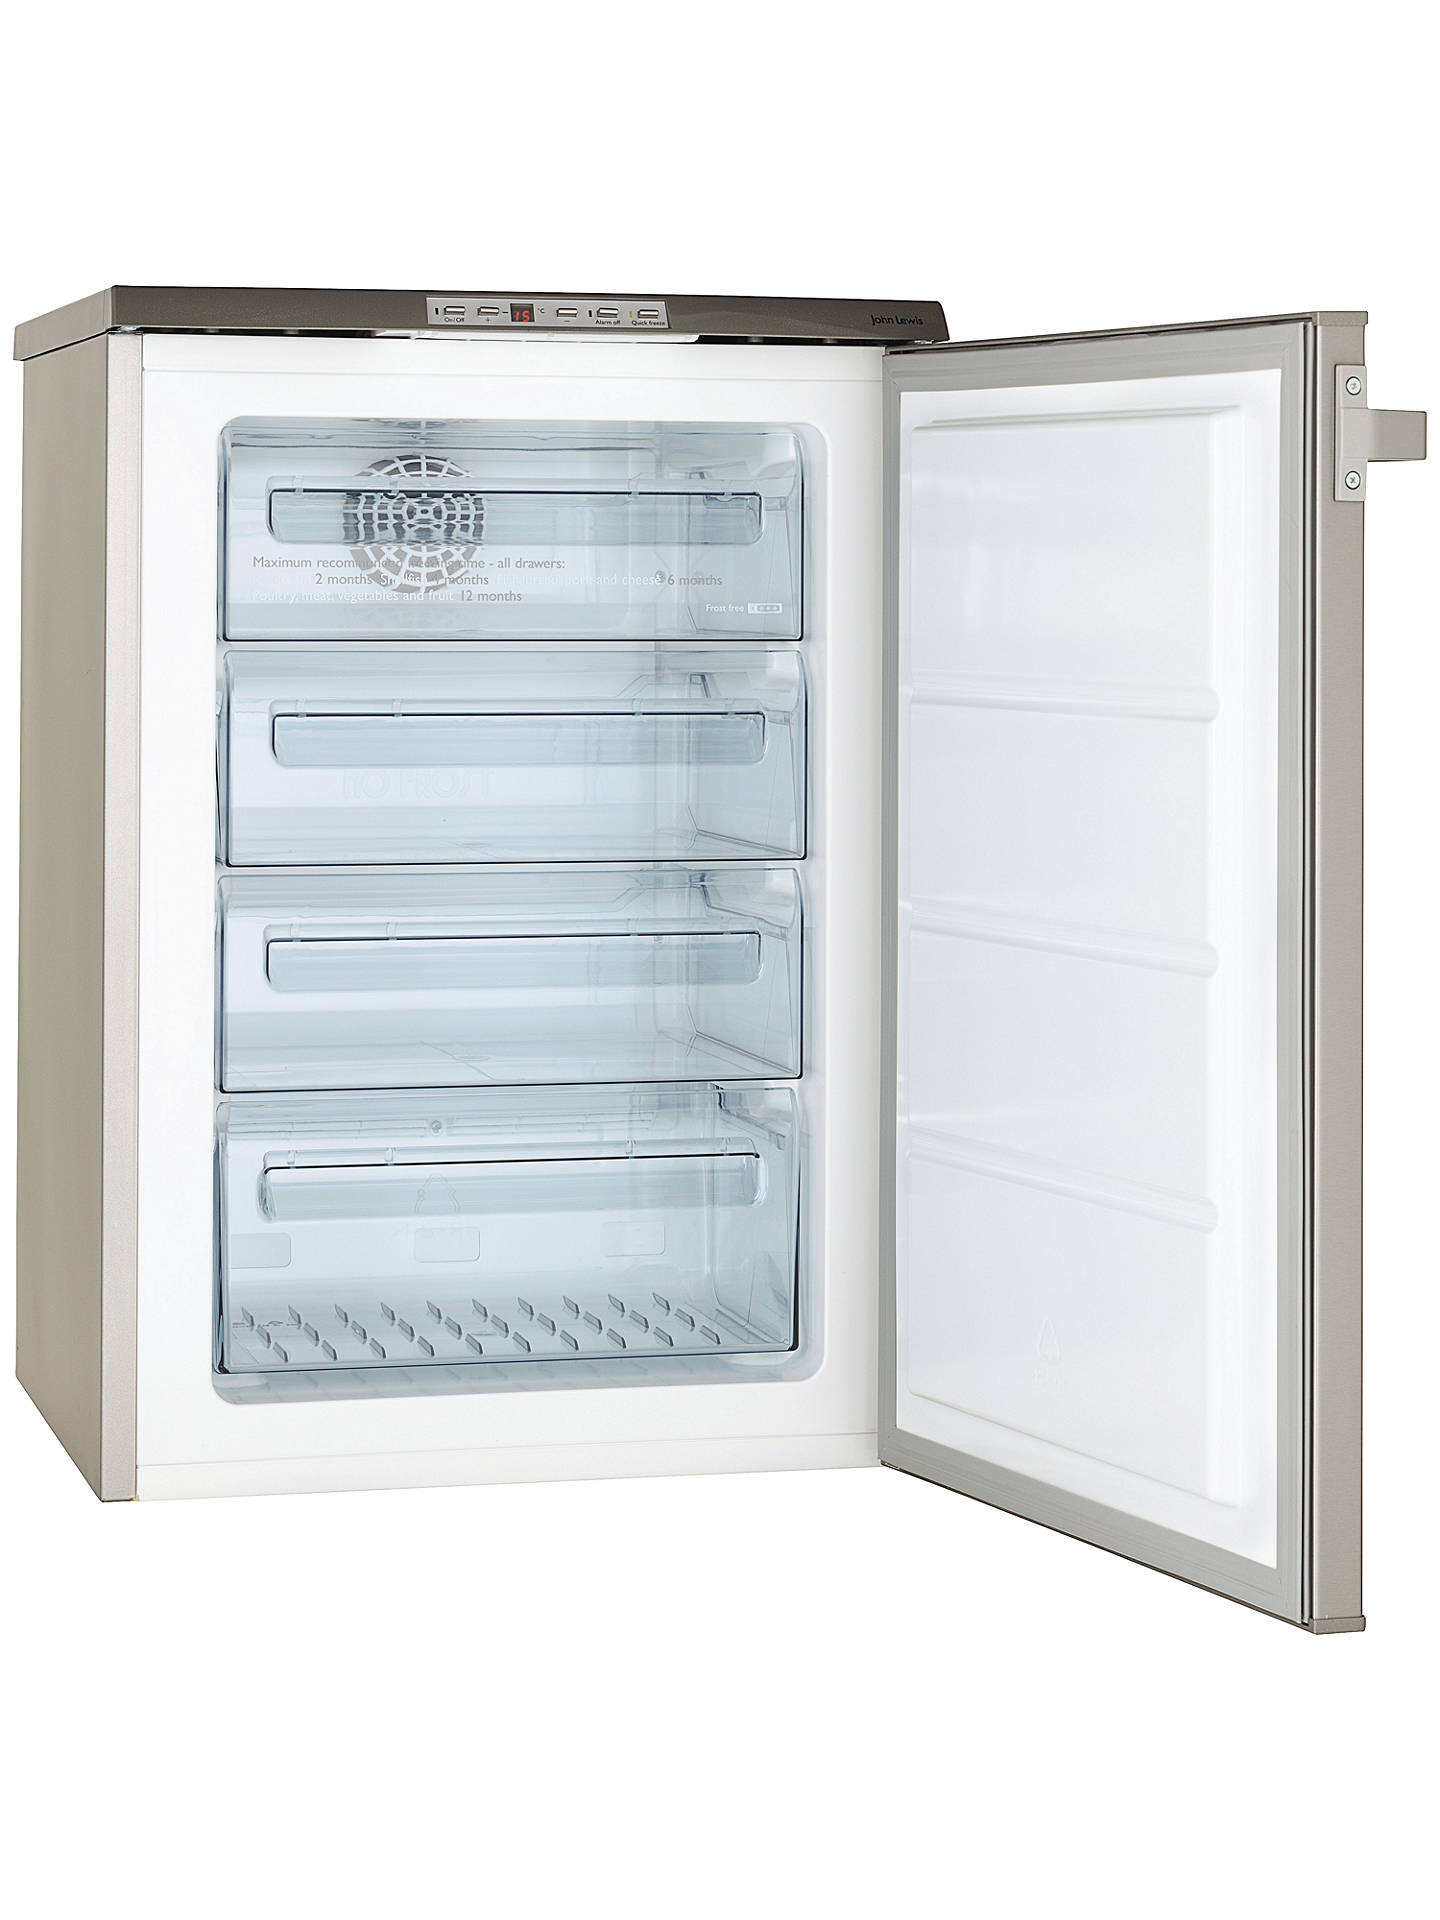 BuyJohn Lewis & Partners JLUCFZS617 Frost Free Freezer, A+ Energy Rating, 60cm Wide, Stainless Steel Online at johnlewis.com